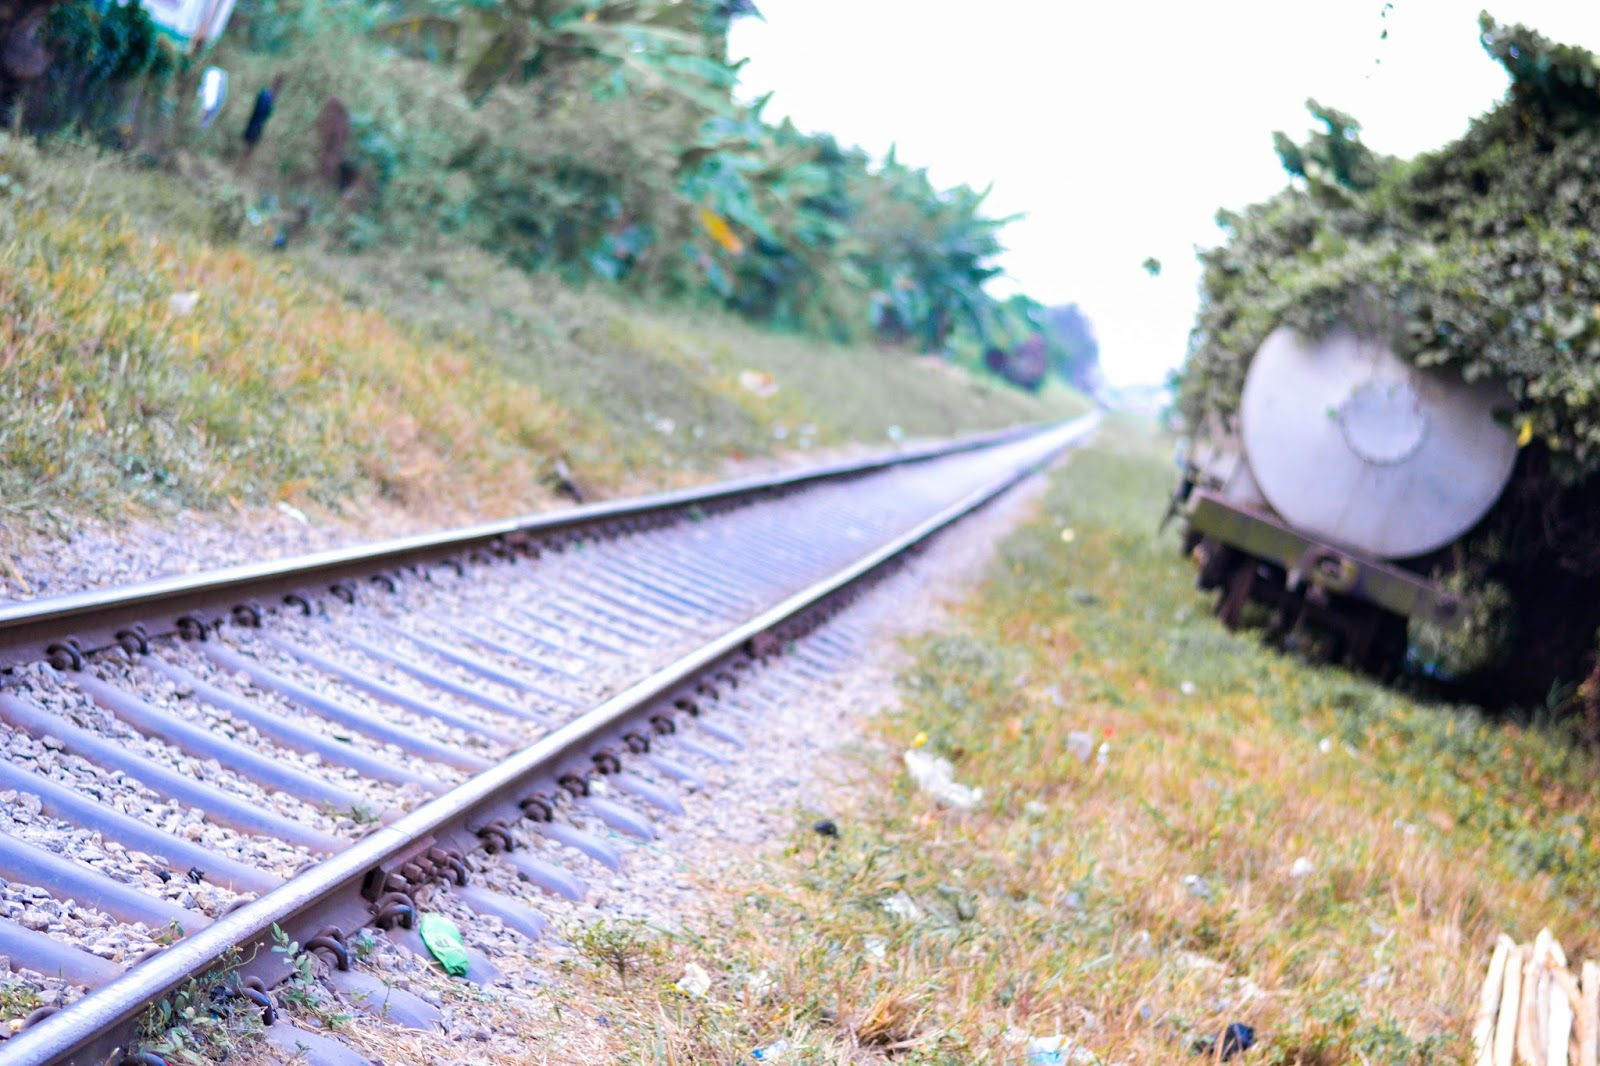 Railway Track and Abandoned Train in Ebute Metta Lagos